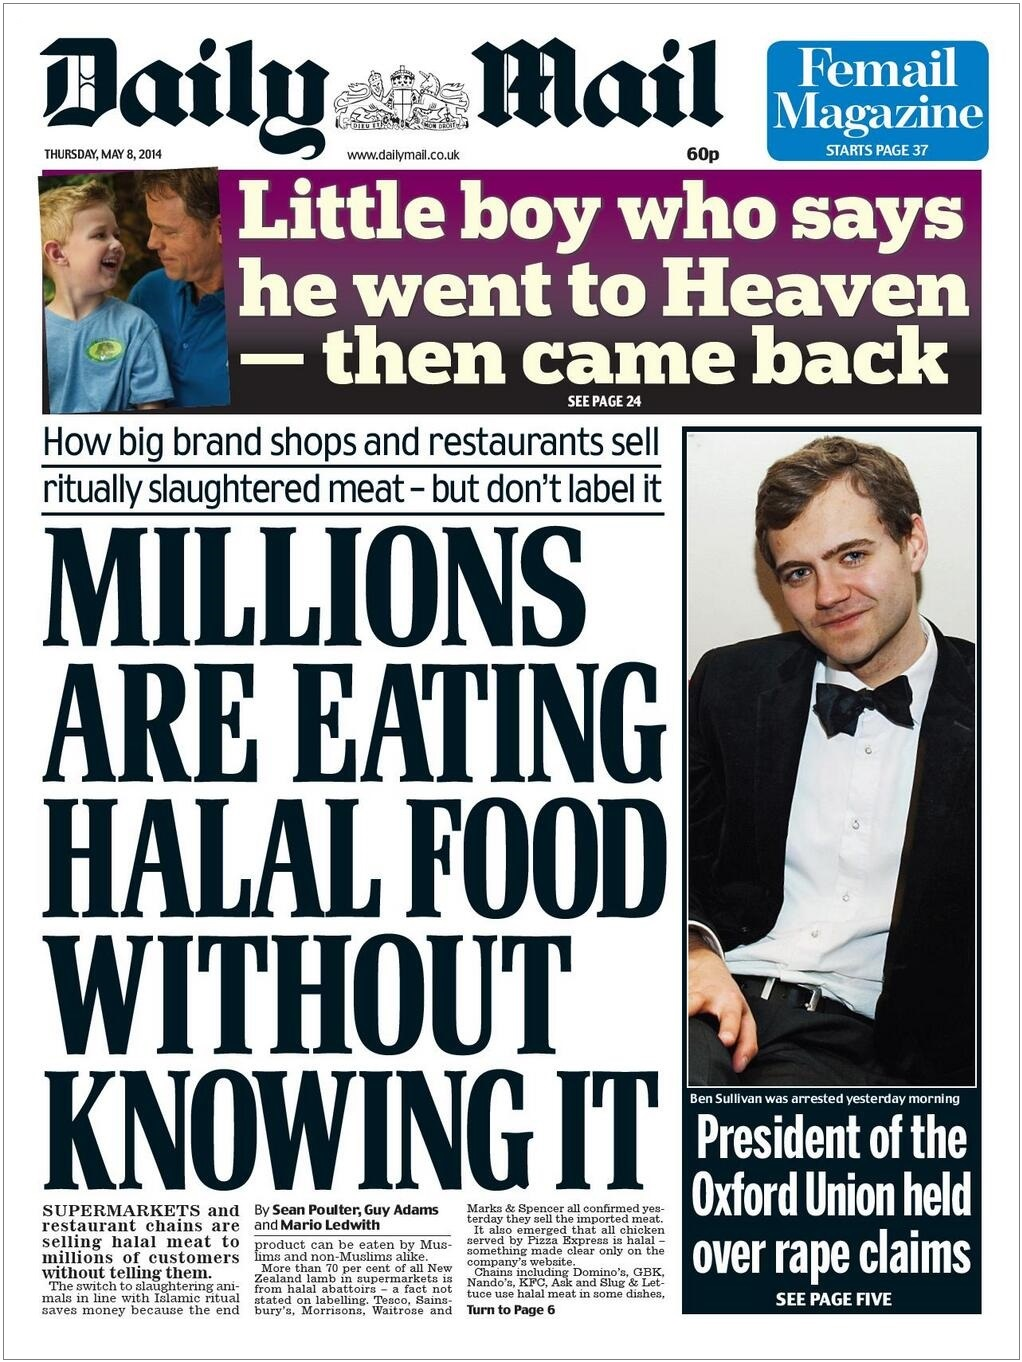 Daily Mail Millions Are Eating Halal Food front page